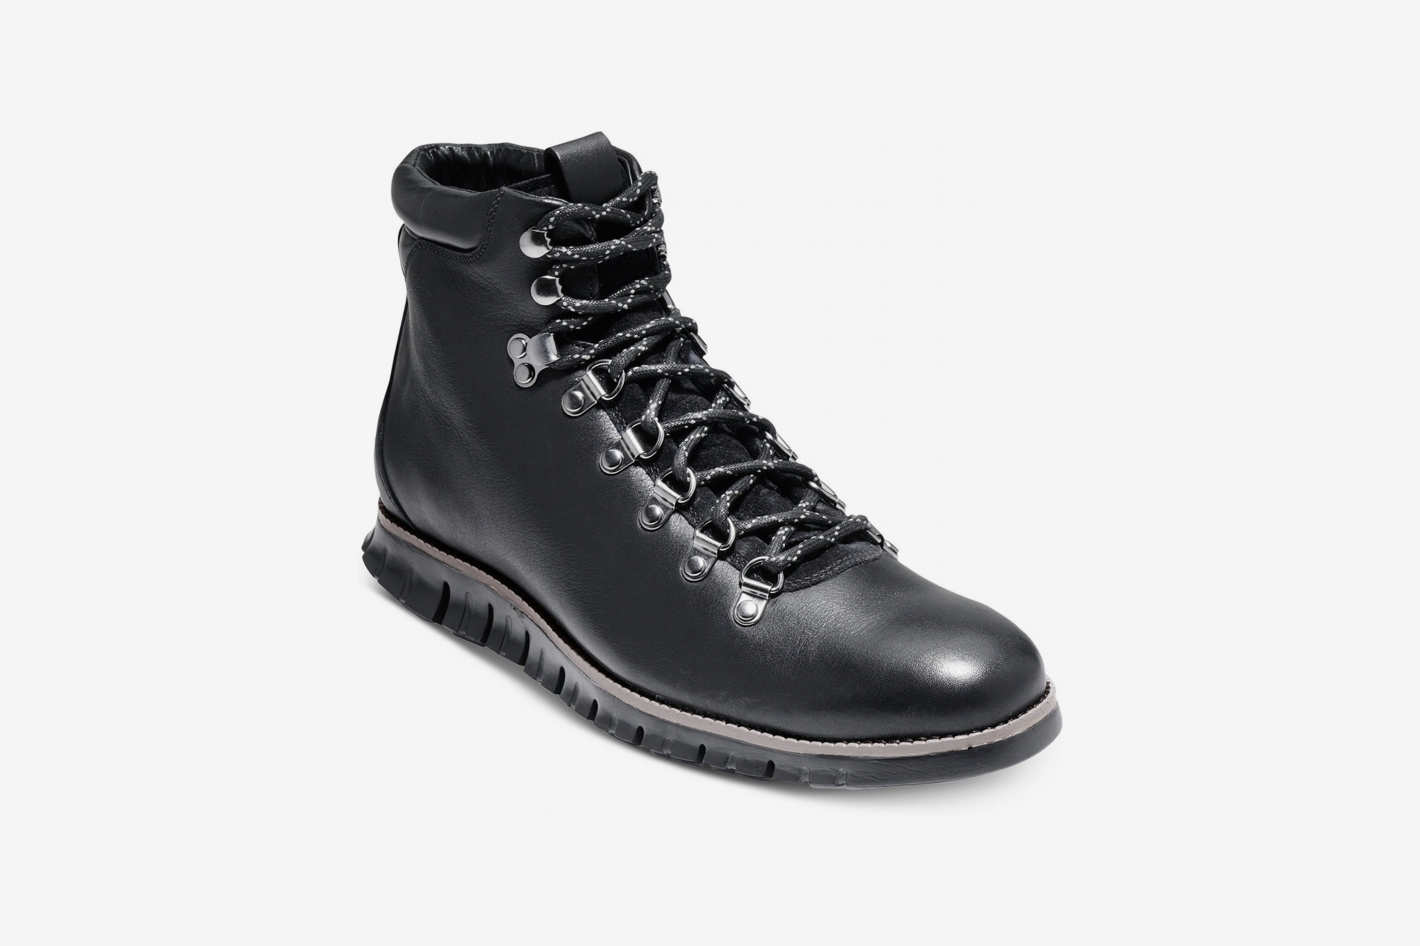 Cole Haan Men's Zero Grand Hiker Water-Resistant II Boots